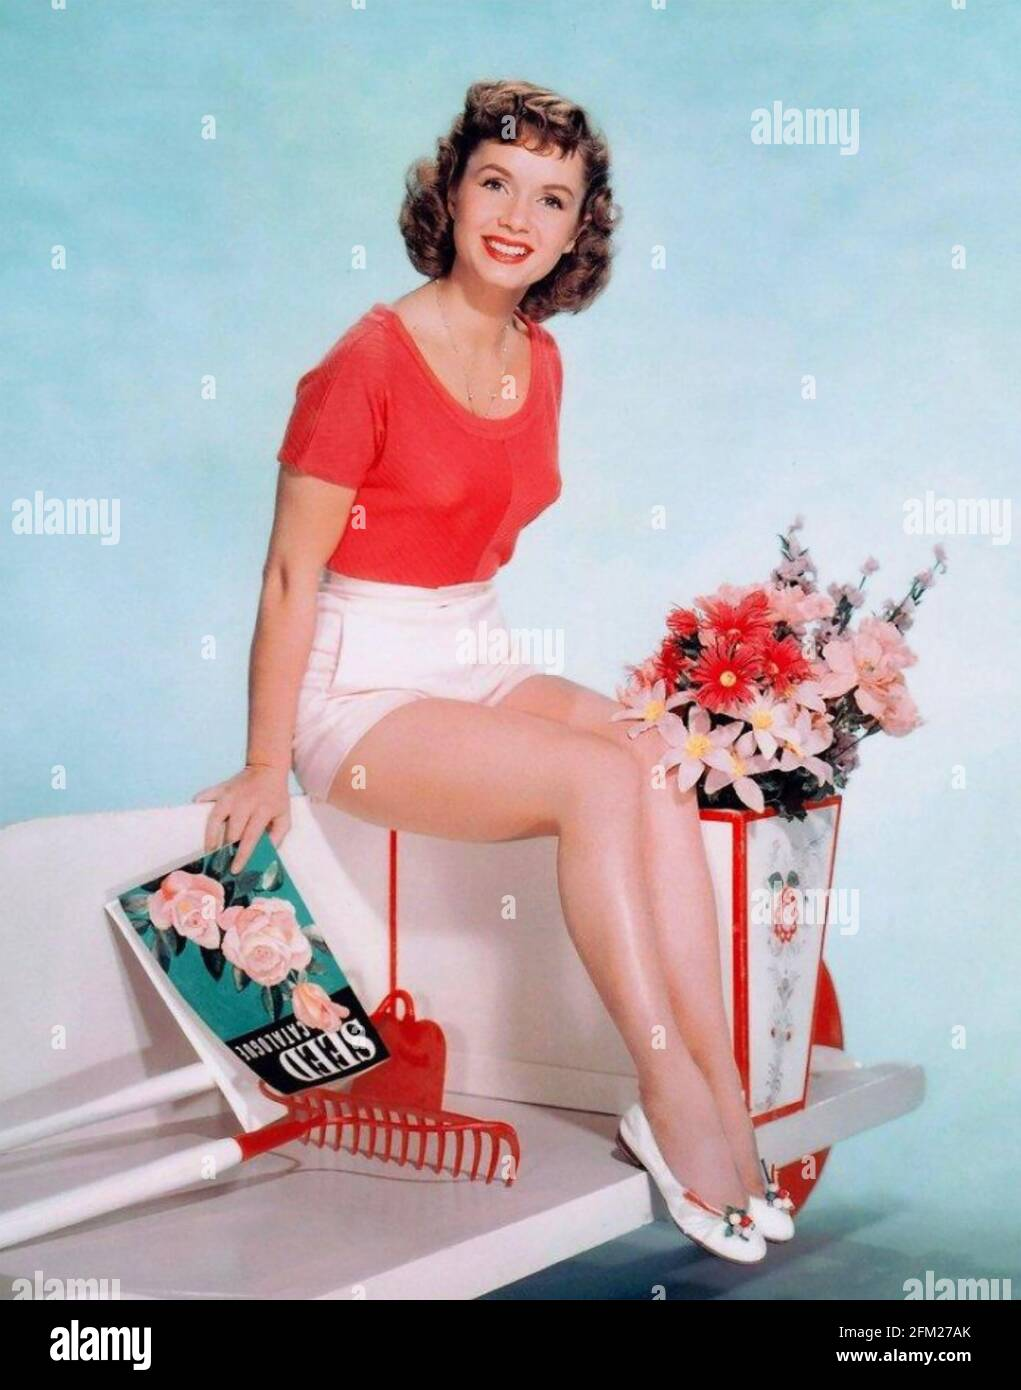 DEBBIE REYNOLDS (1932-2016) American film actress and singer about 1960 Stock Photo